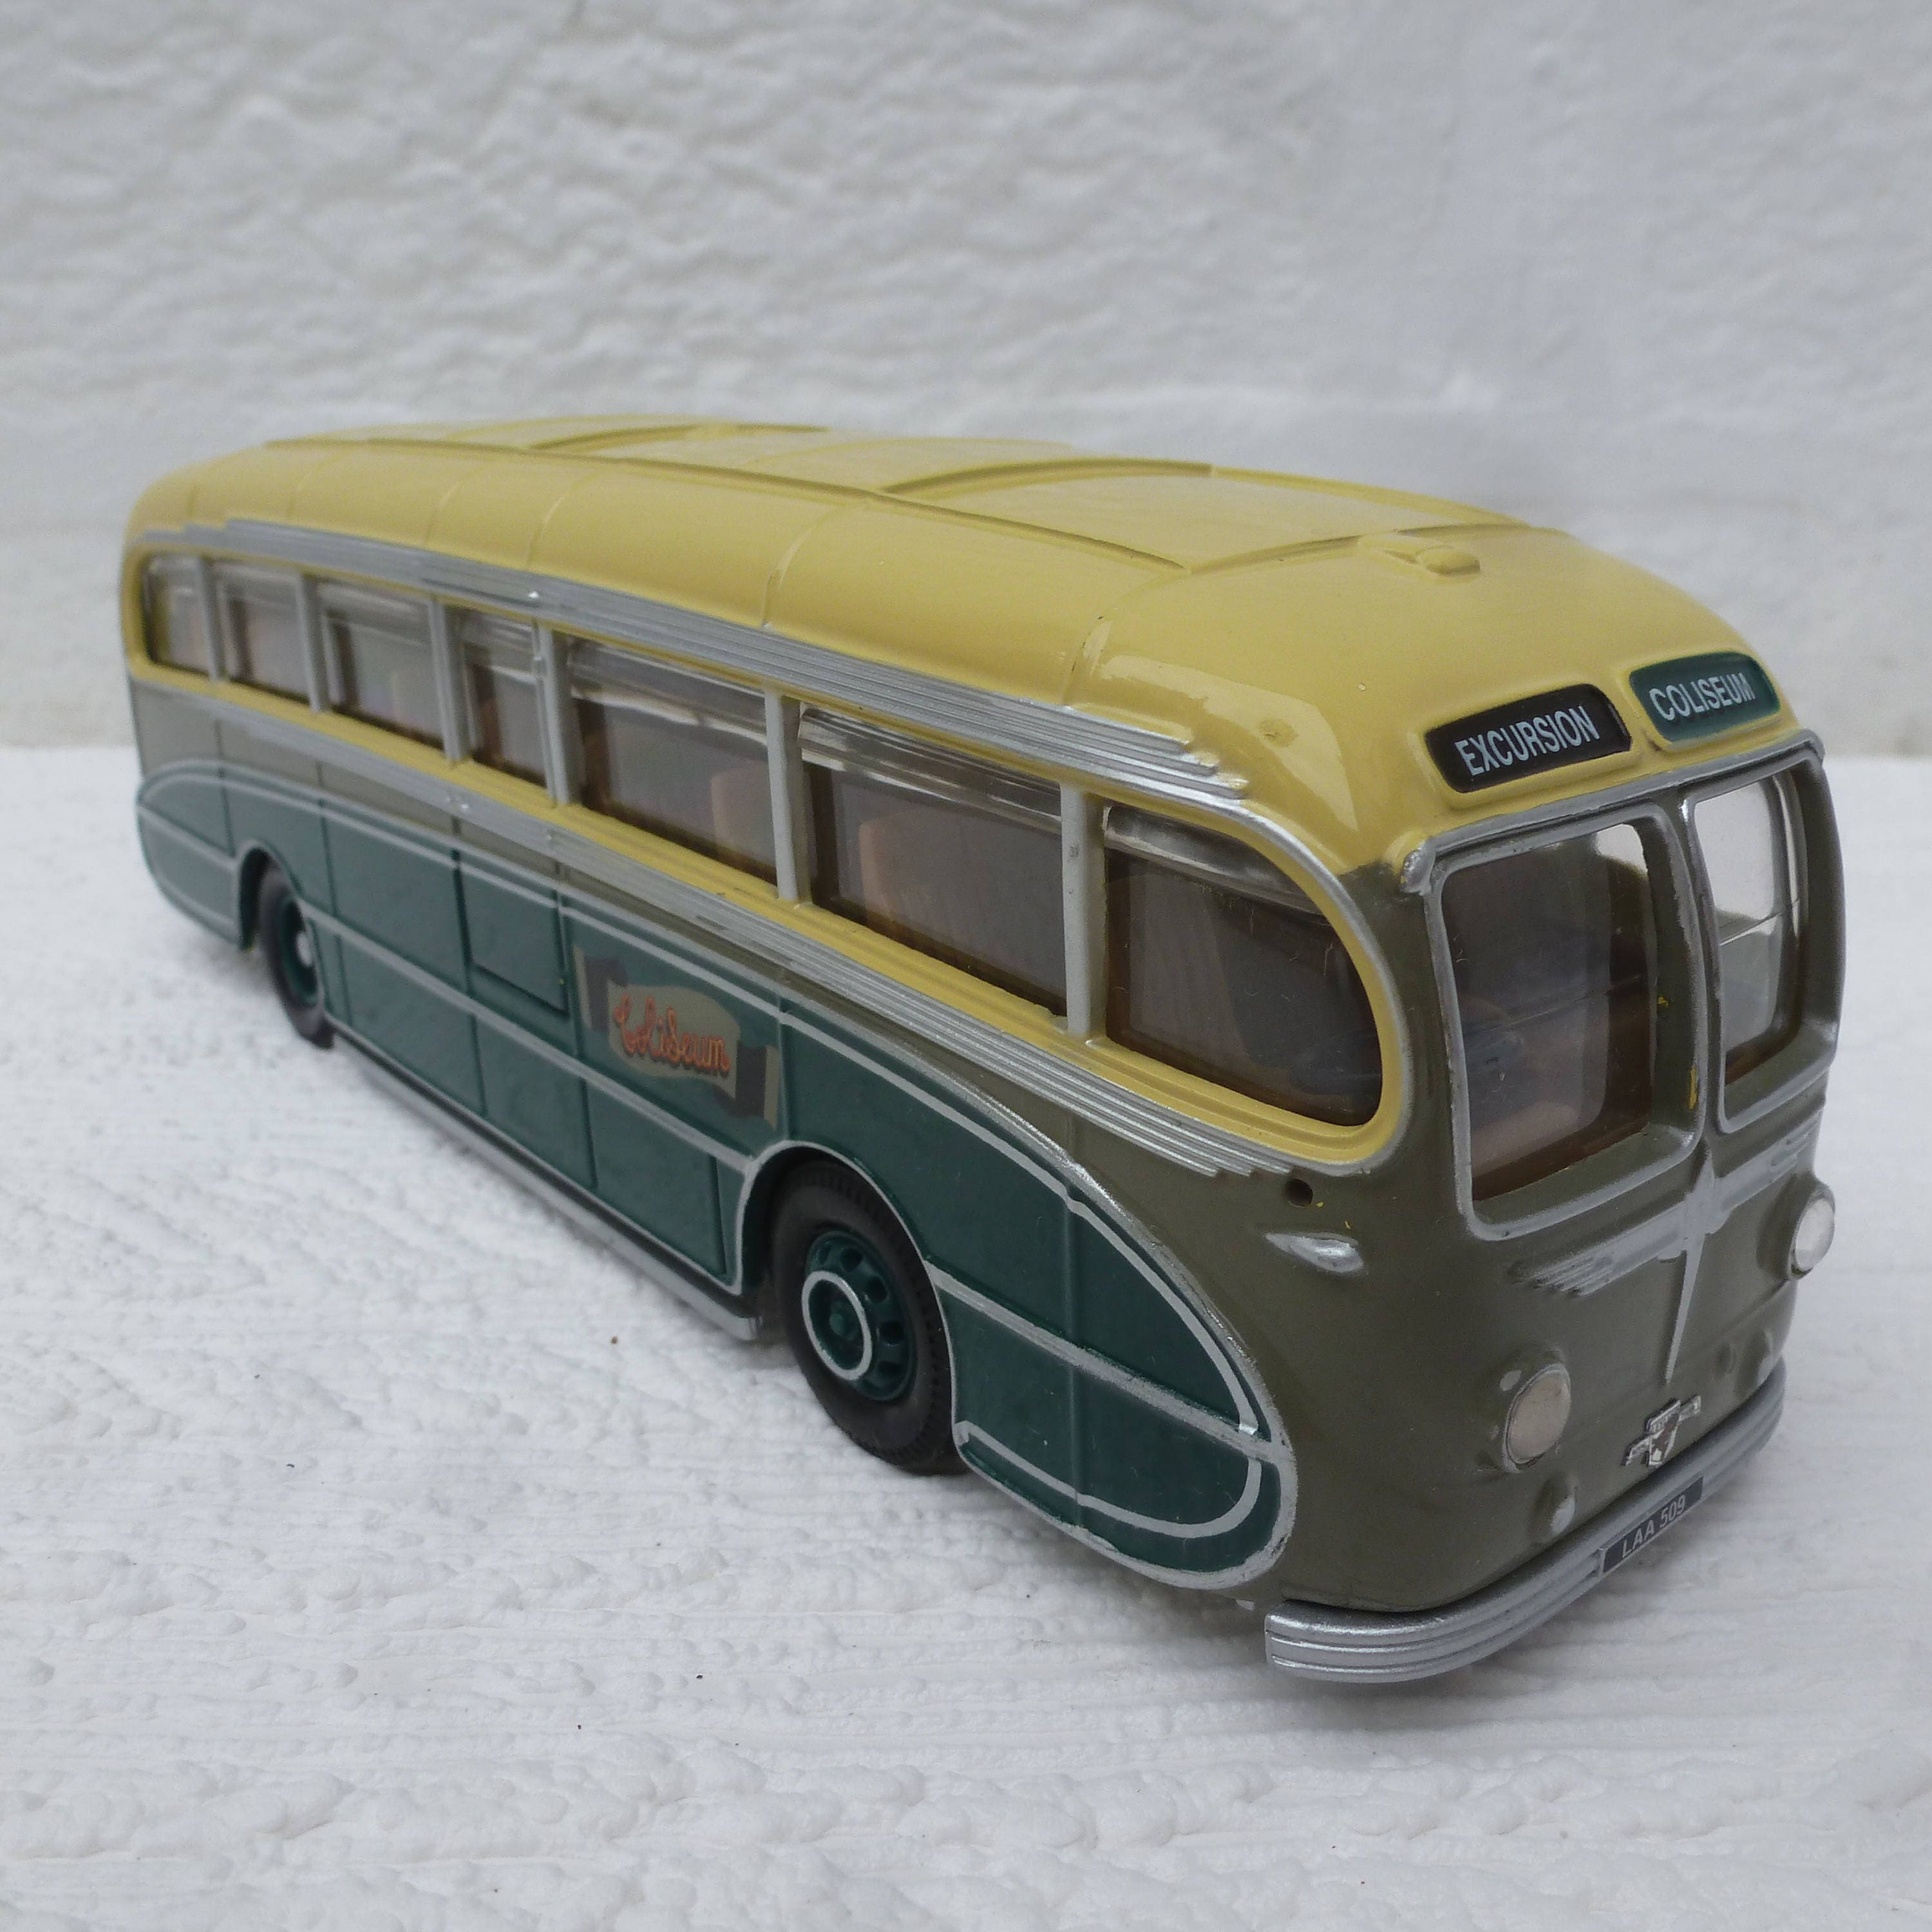 Vintage vehicle bus green coach 1993 birthday gift toy present collectors item bus gift for him green yellow model toy limited edition dads